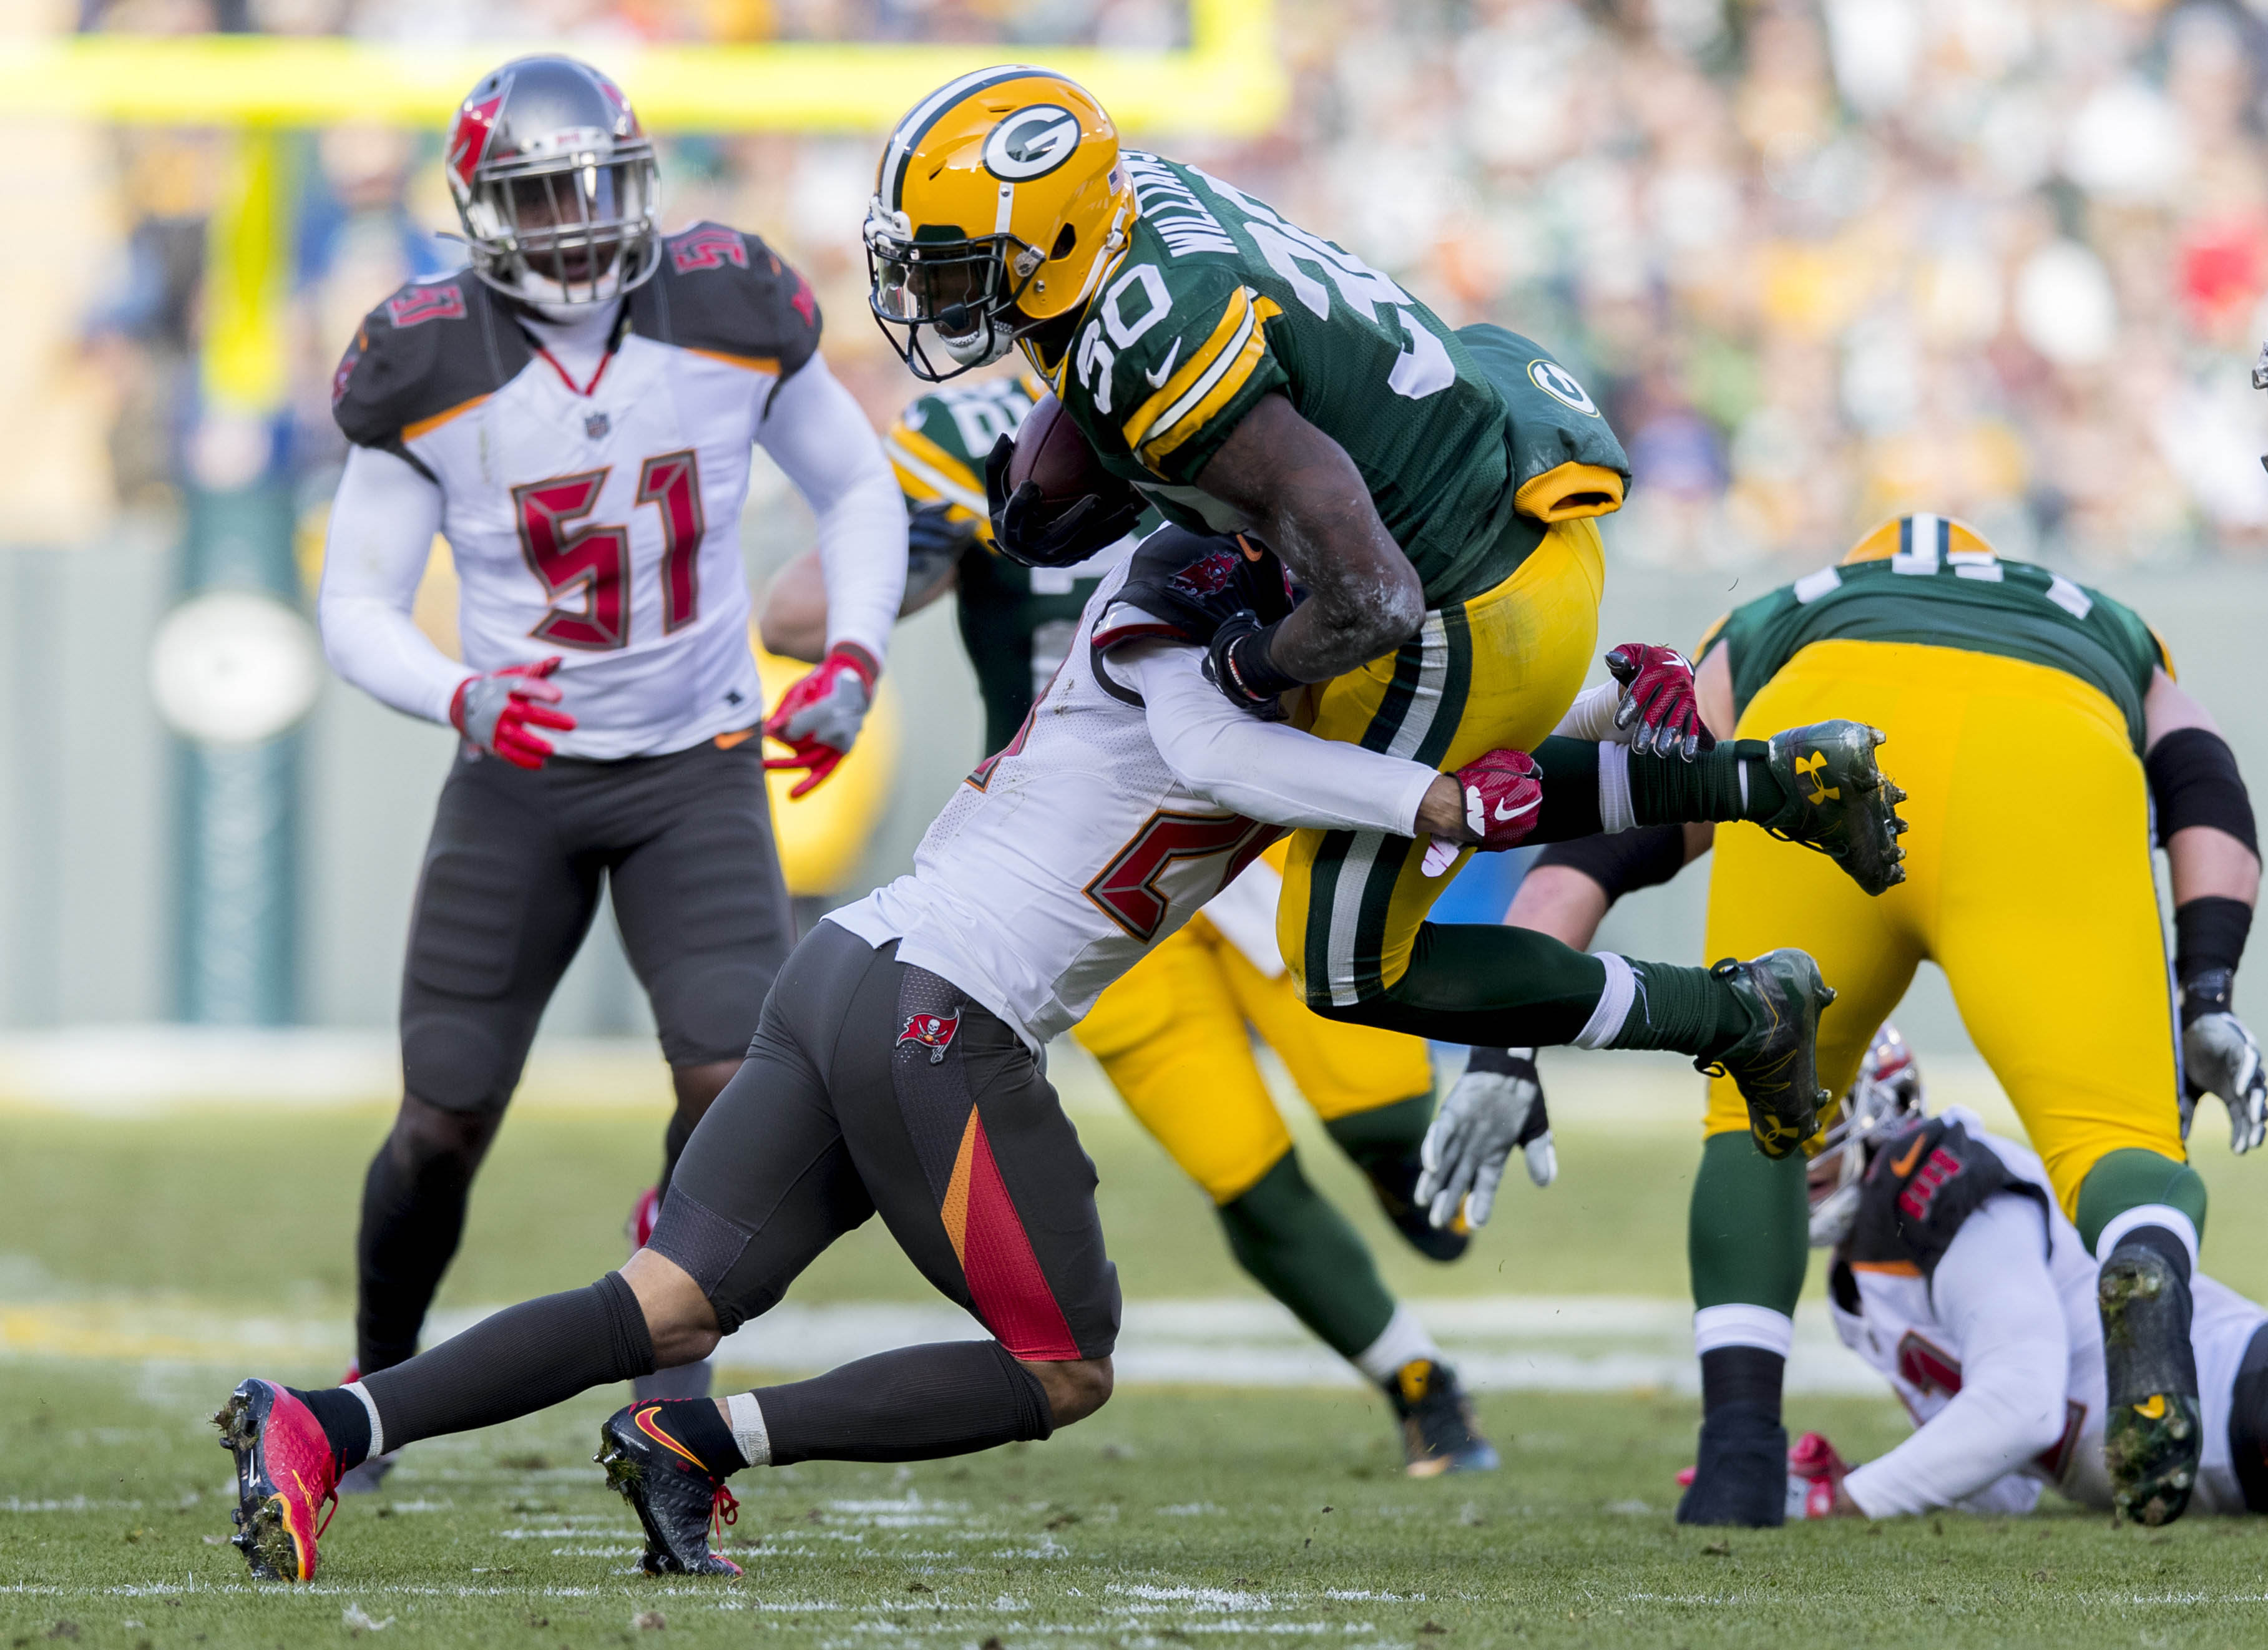 Dec 3, 2017; Green Bay, WI, USA; Green Bay Packers running back Jamaal Williams (30) is tackled with the football during the first quarter` against the Tampa Bay Buccaneers at Lambeau Field. Mandatory Credit: Jeff Hanisch-USA TODAY Sports